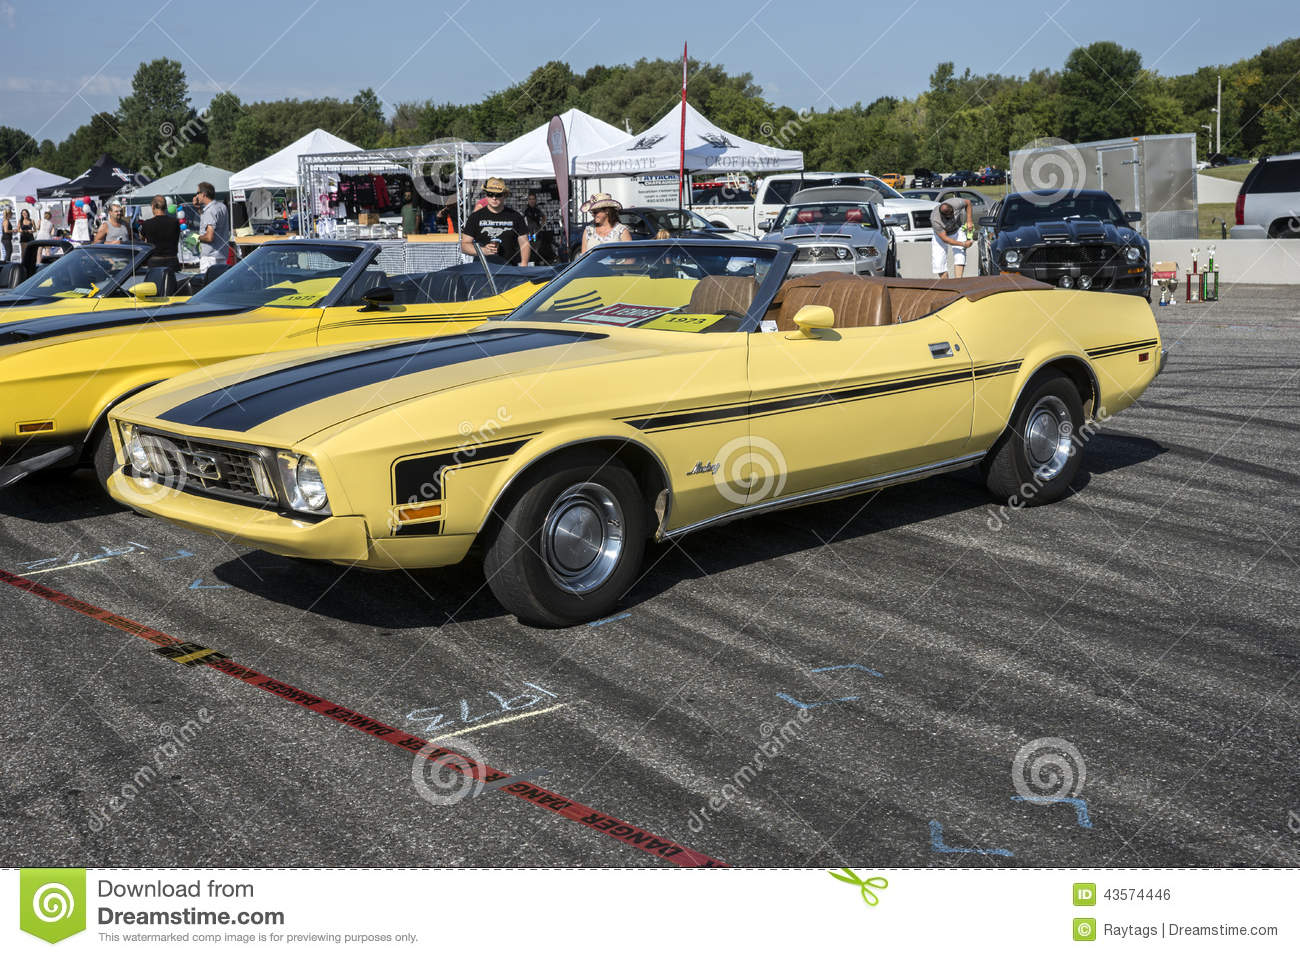 Sanair august 9 2014 front side view of yellow mustang convertible with top down and ginger interior color at 19e super ford show